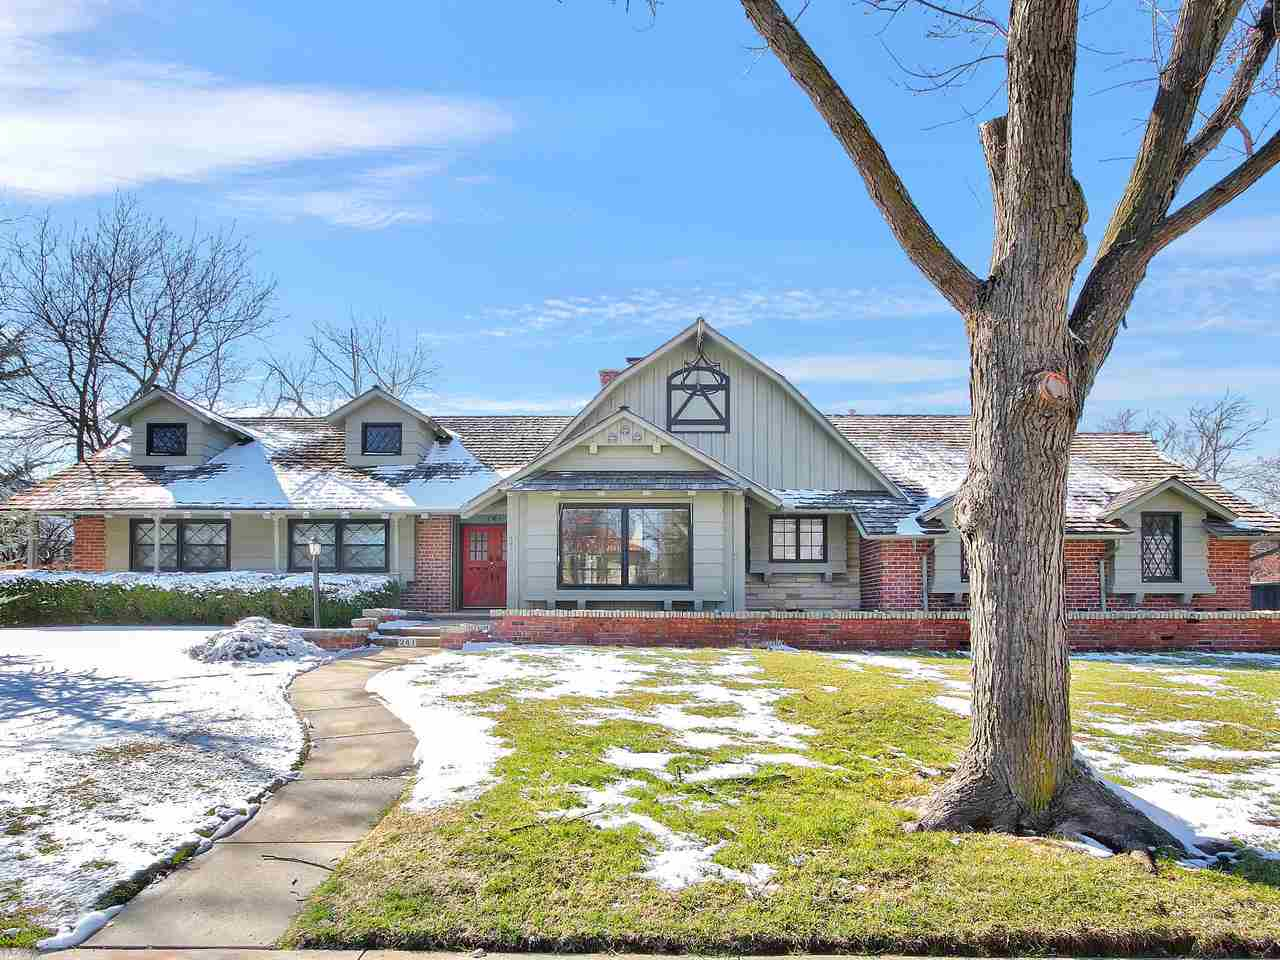 OPEN HOUSE SUNDAY FEB. 23RD 2-4 P.M.  Fabulous College Hill Ranch in gorgeous neighborhood and surro